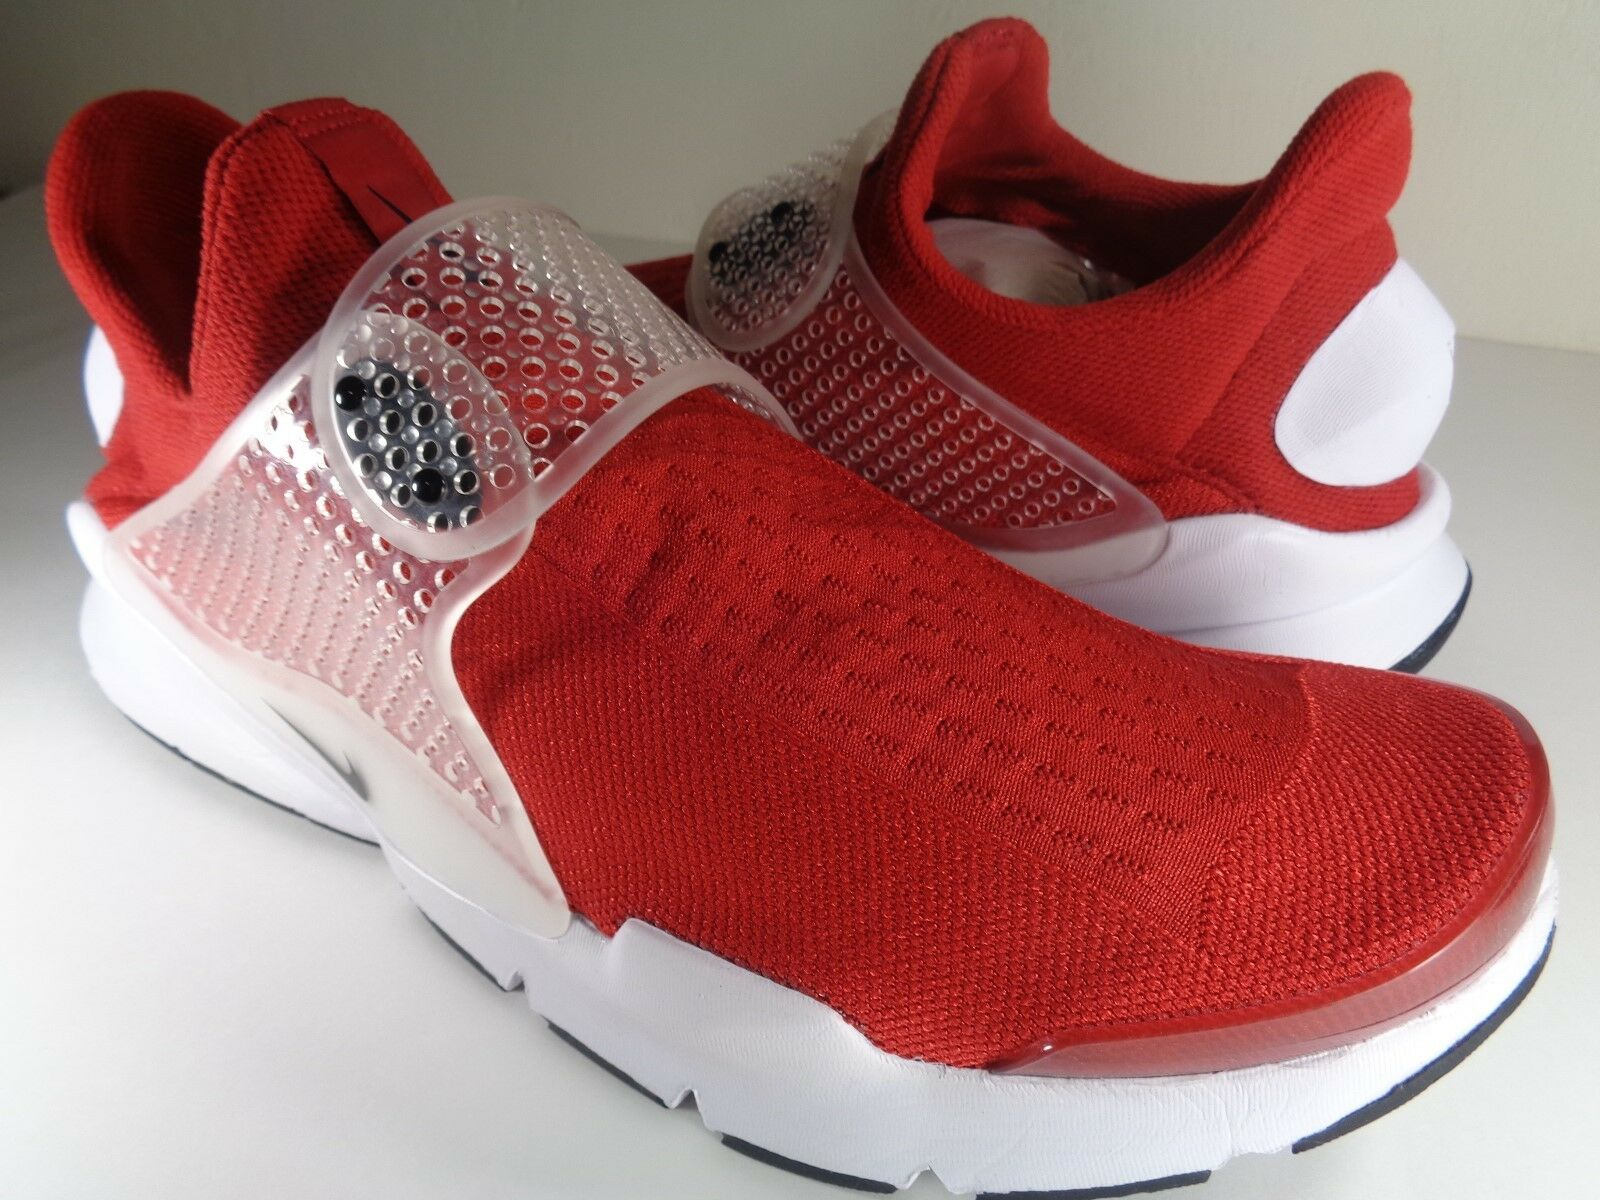 Nike Sock Dart Gym Red Black White Price reduction Seasonal price cuts, discount benefits